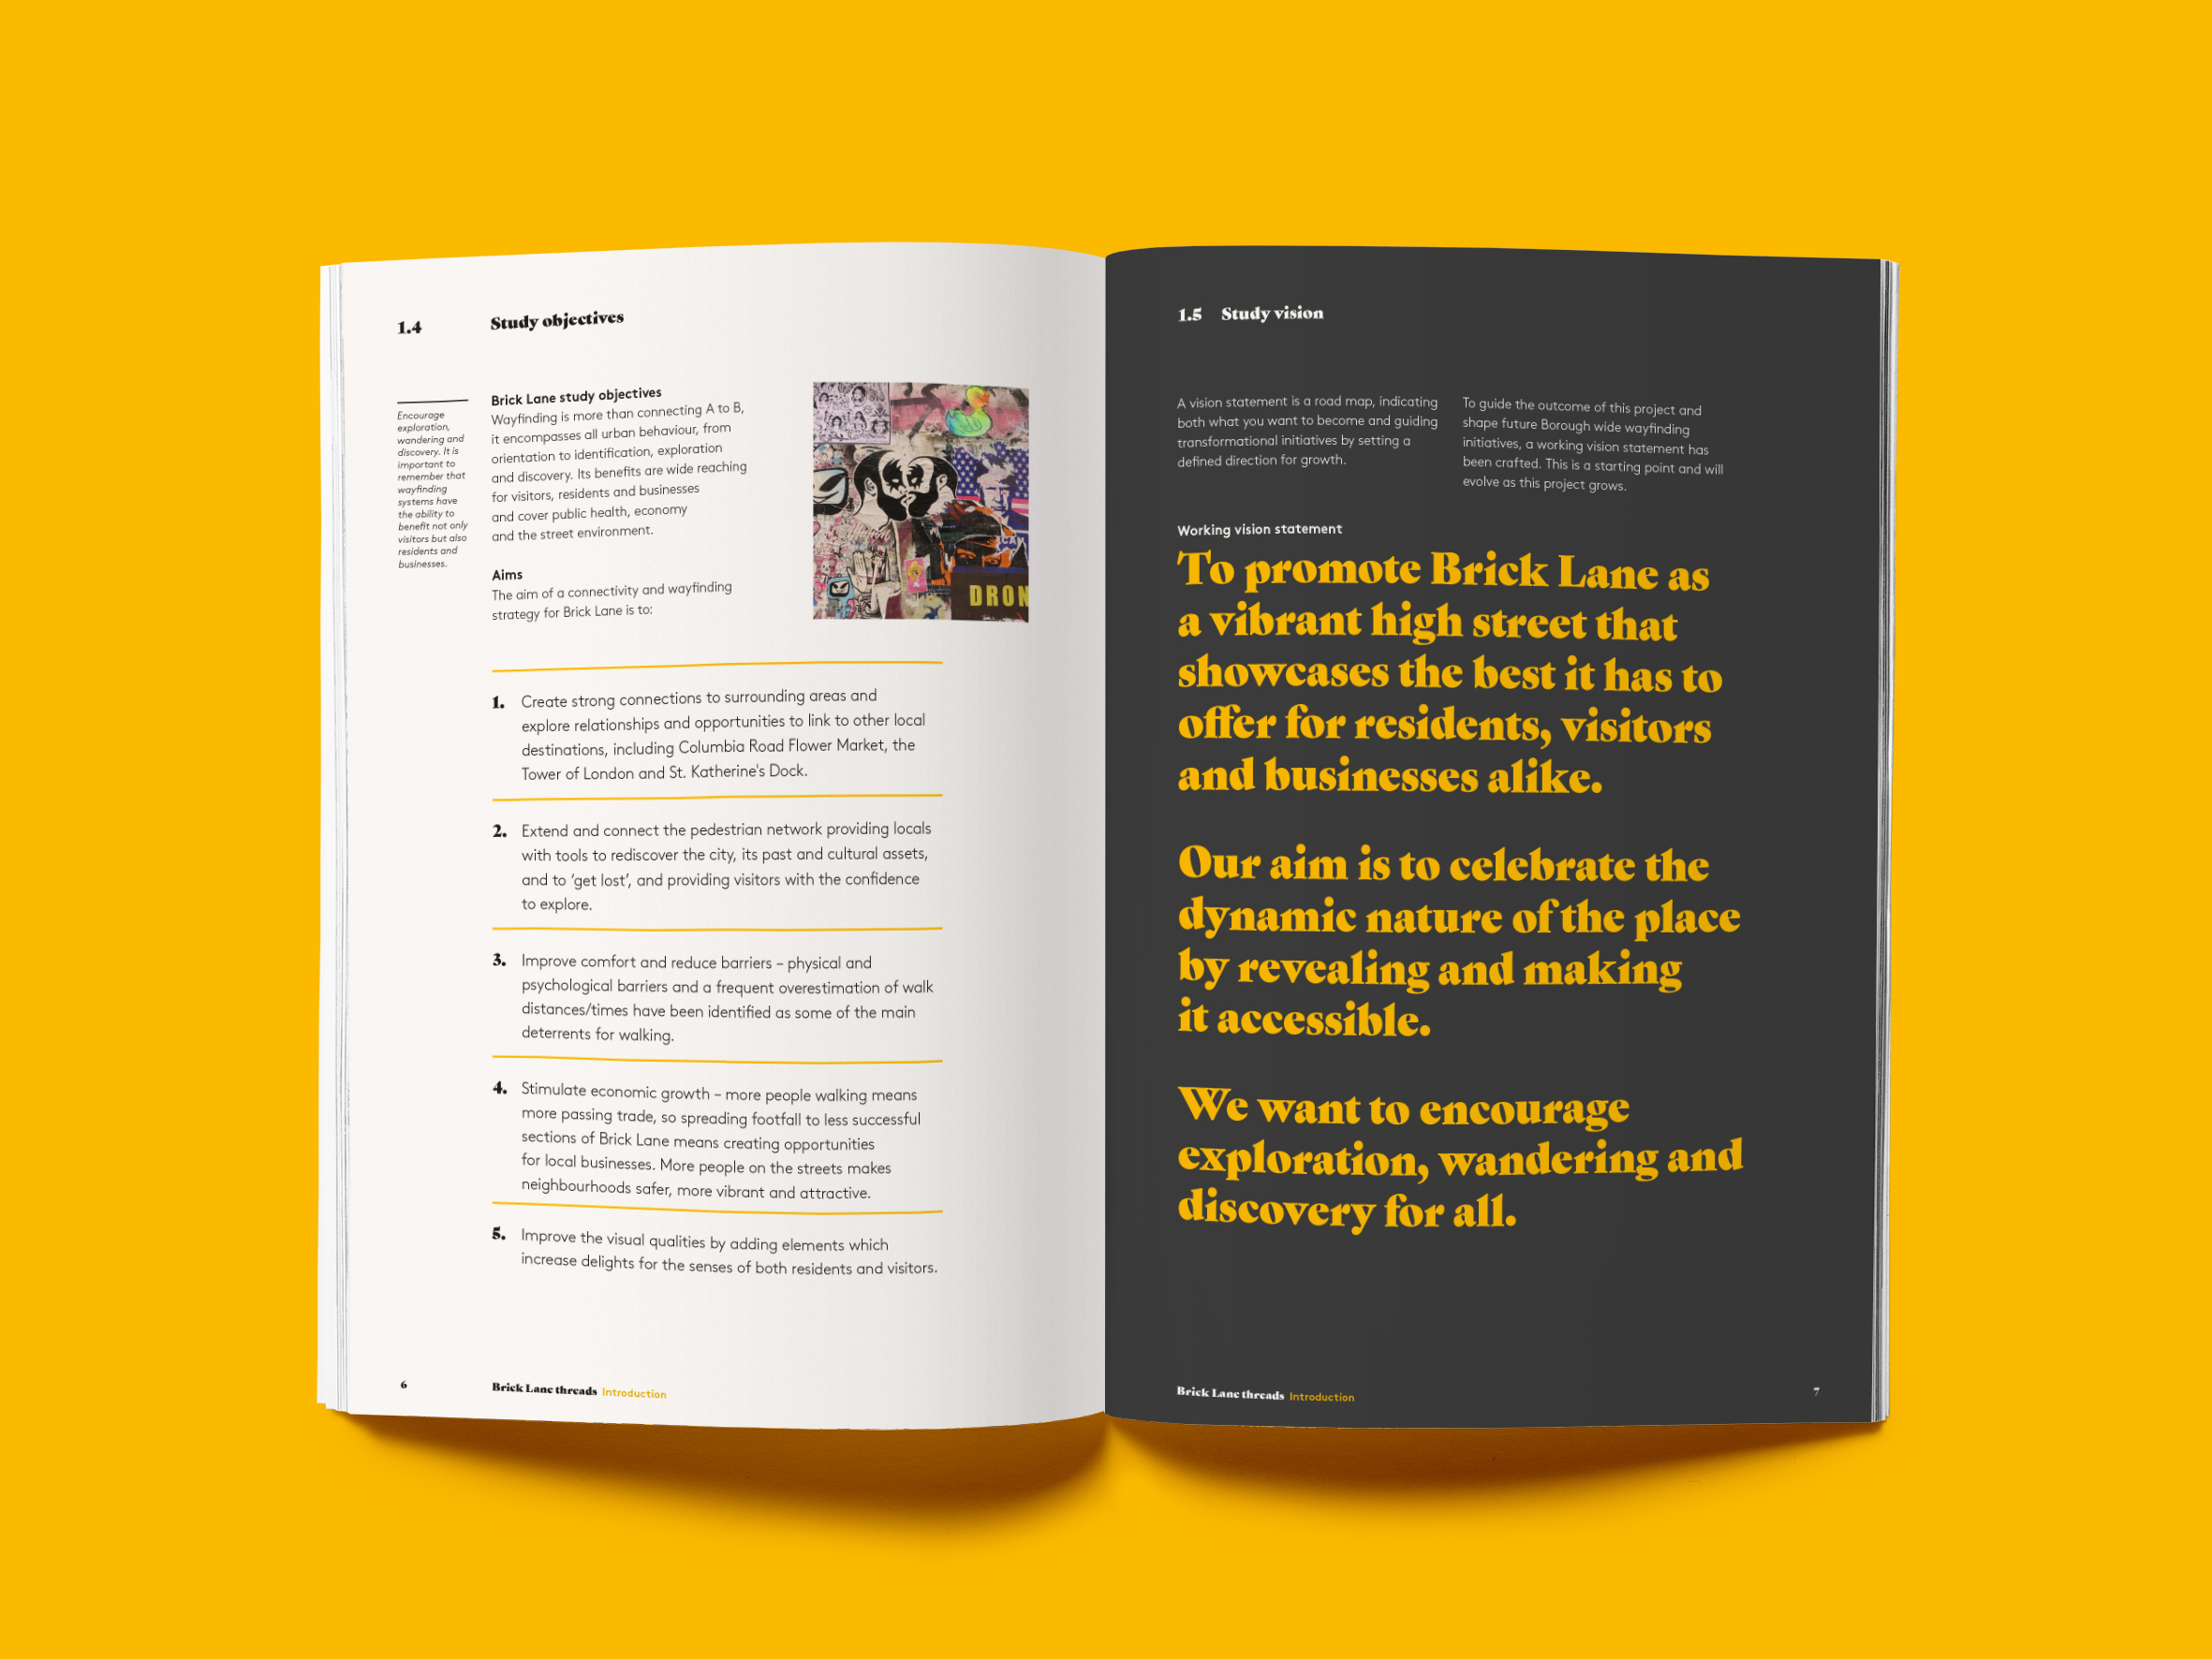 Brick Lane threads study objective and working vision statement